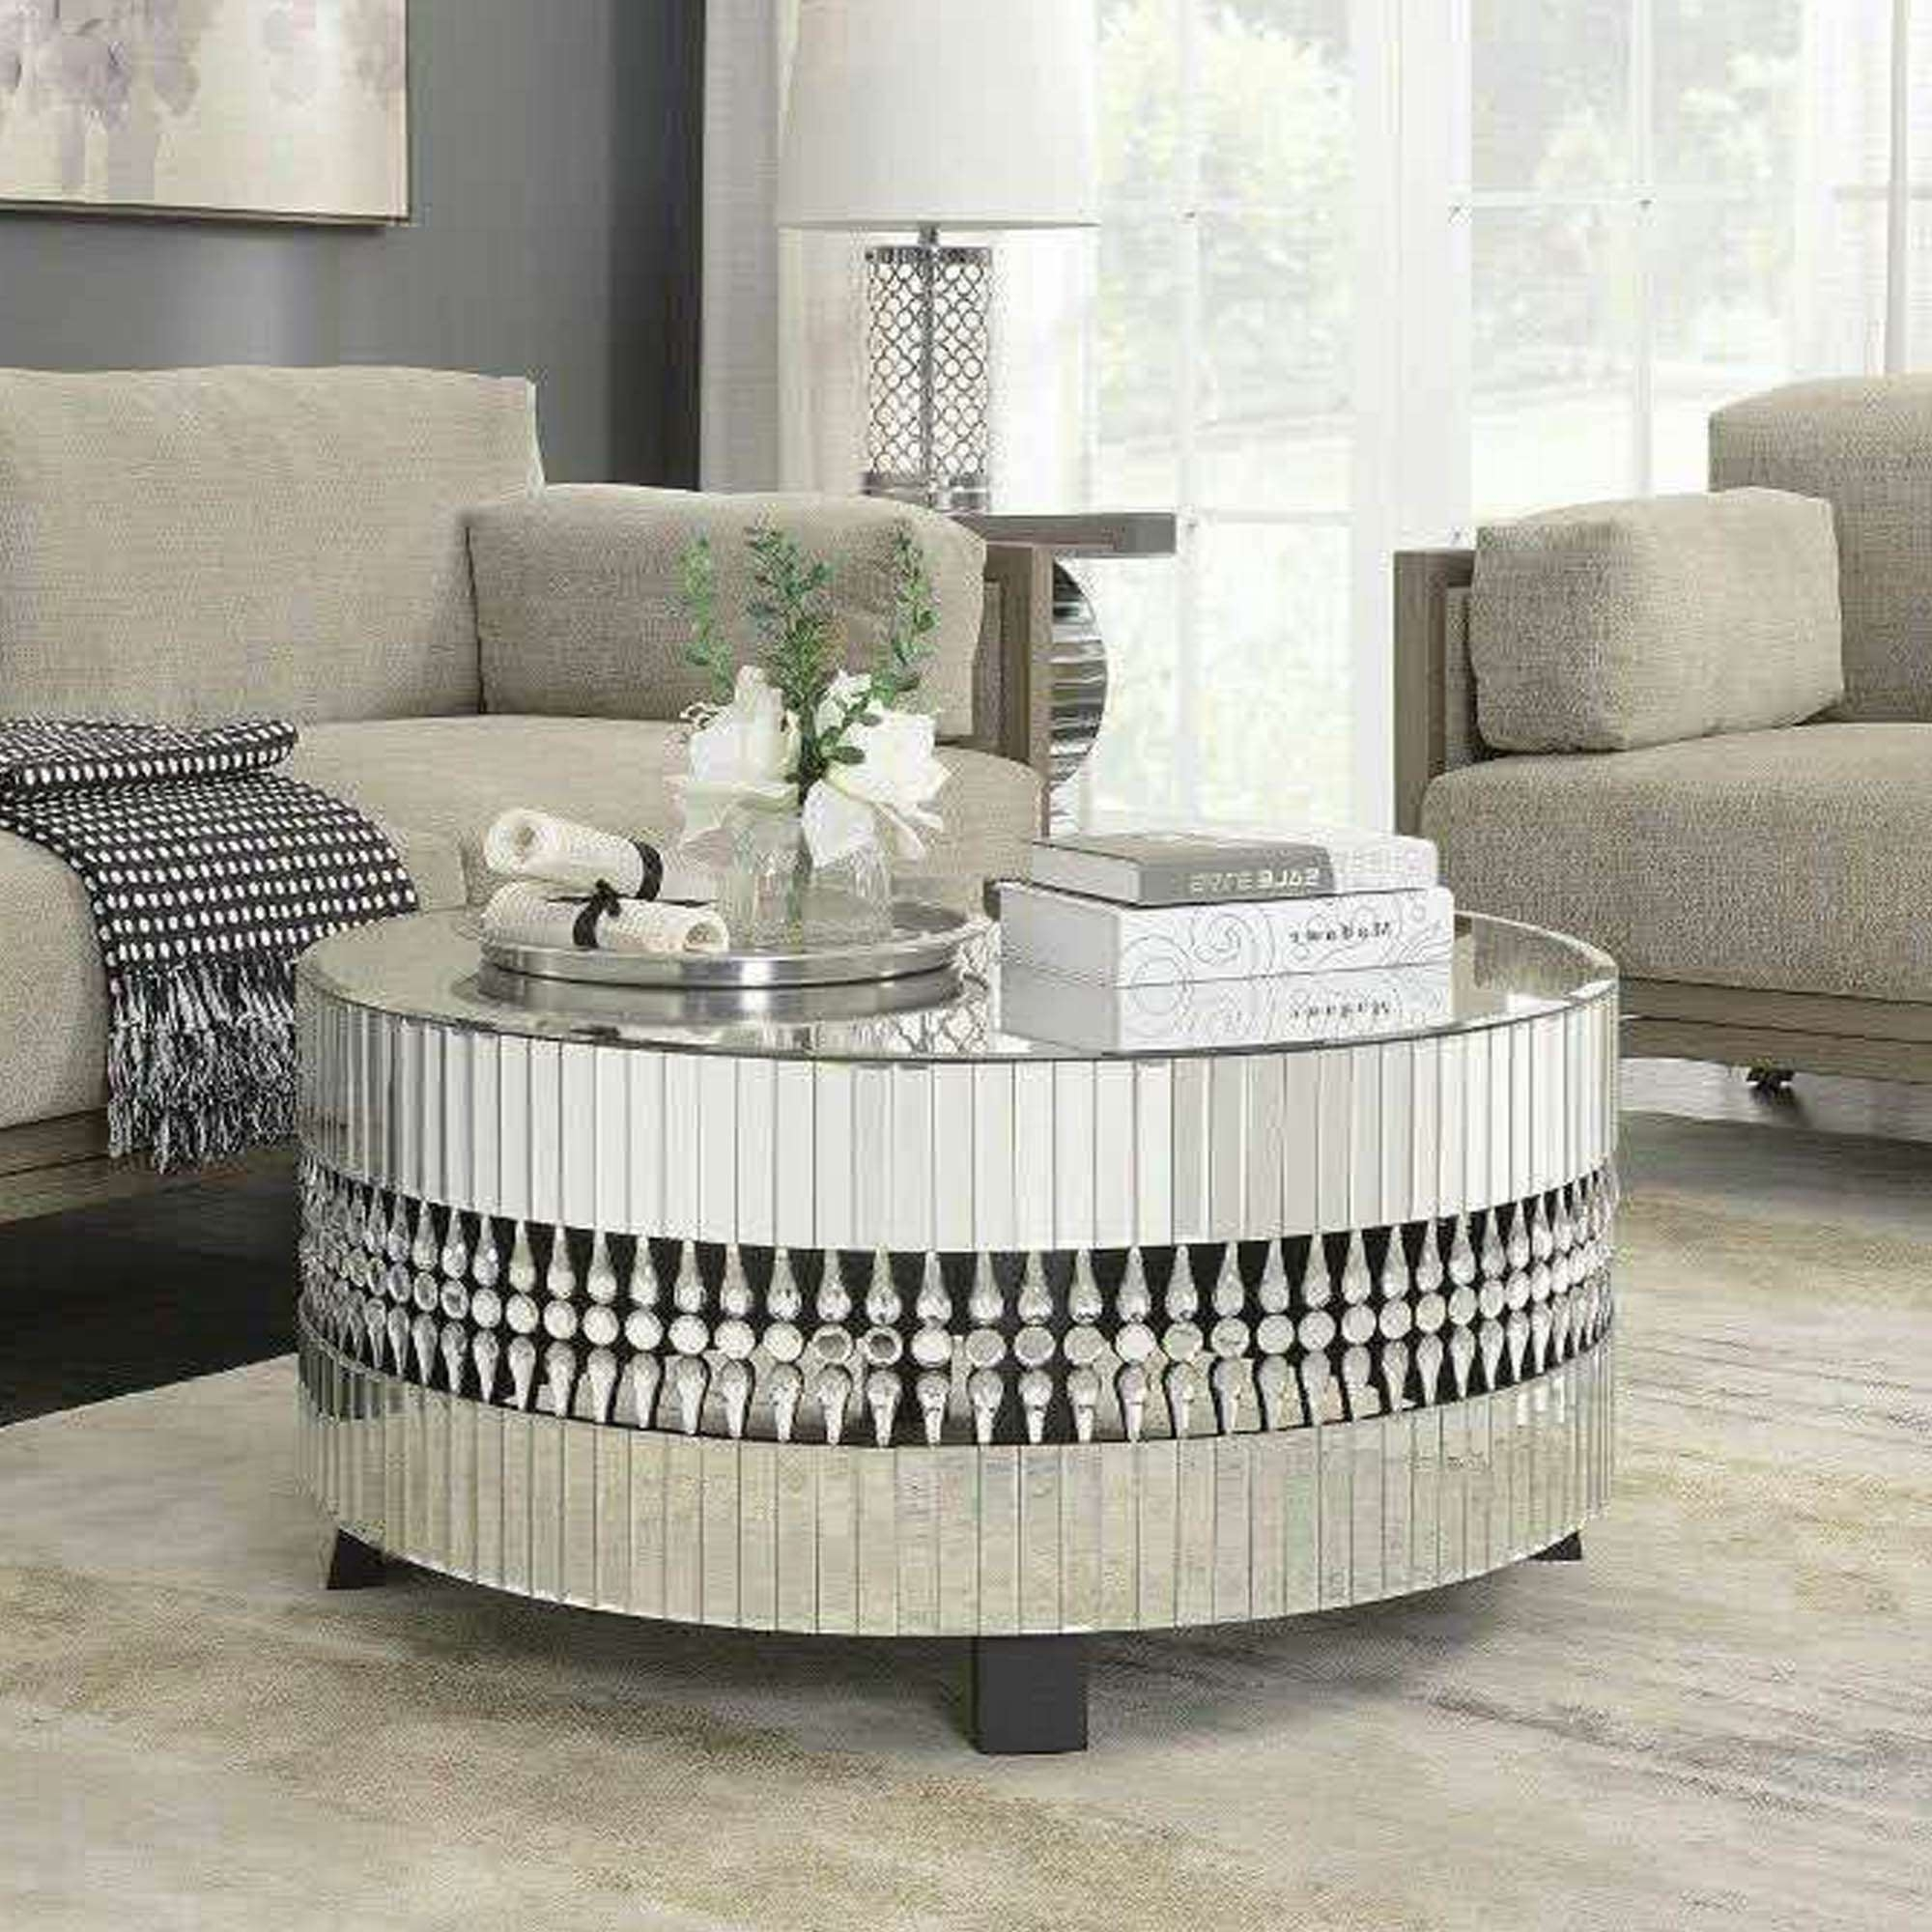 Coffee Table : Mirrored Coffee Table To Simplicity Yet Glamorous Within Most Current Coffee Tables Mirrored (View 3 of 20)